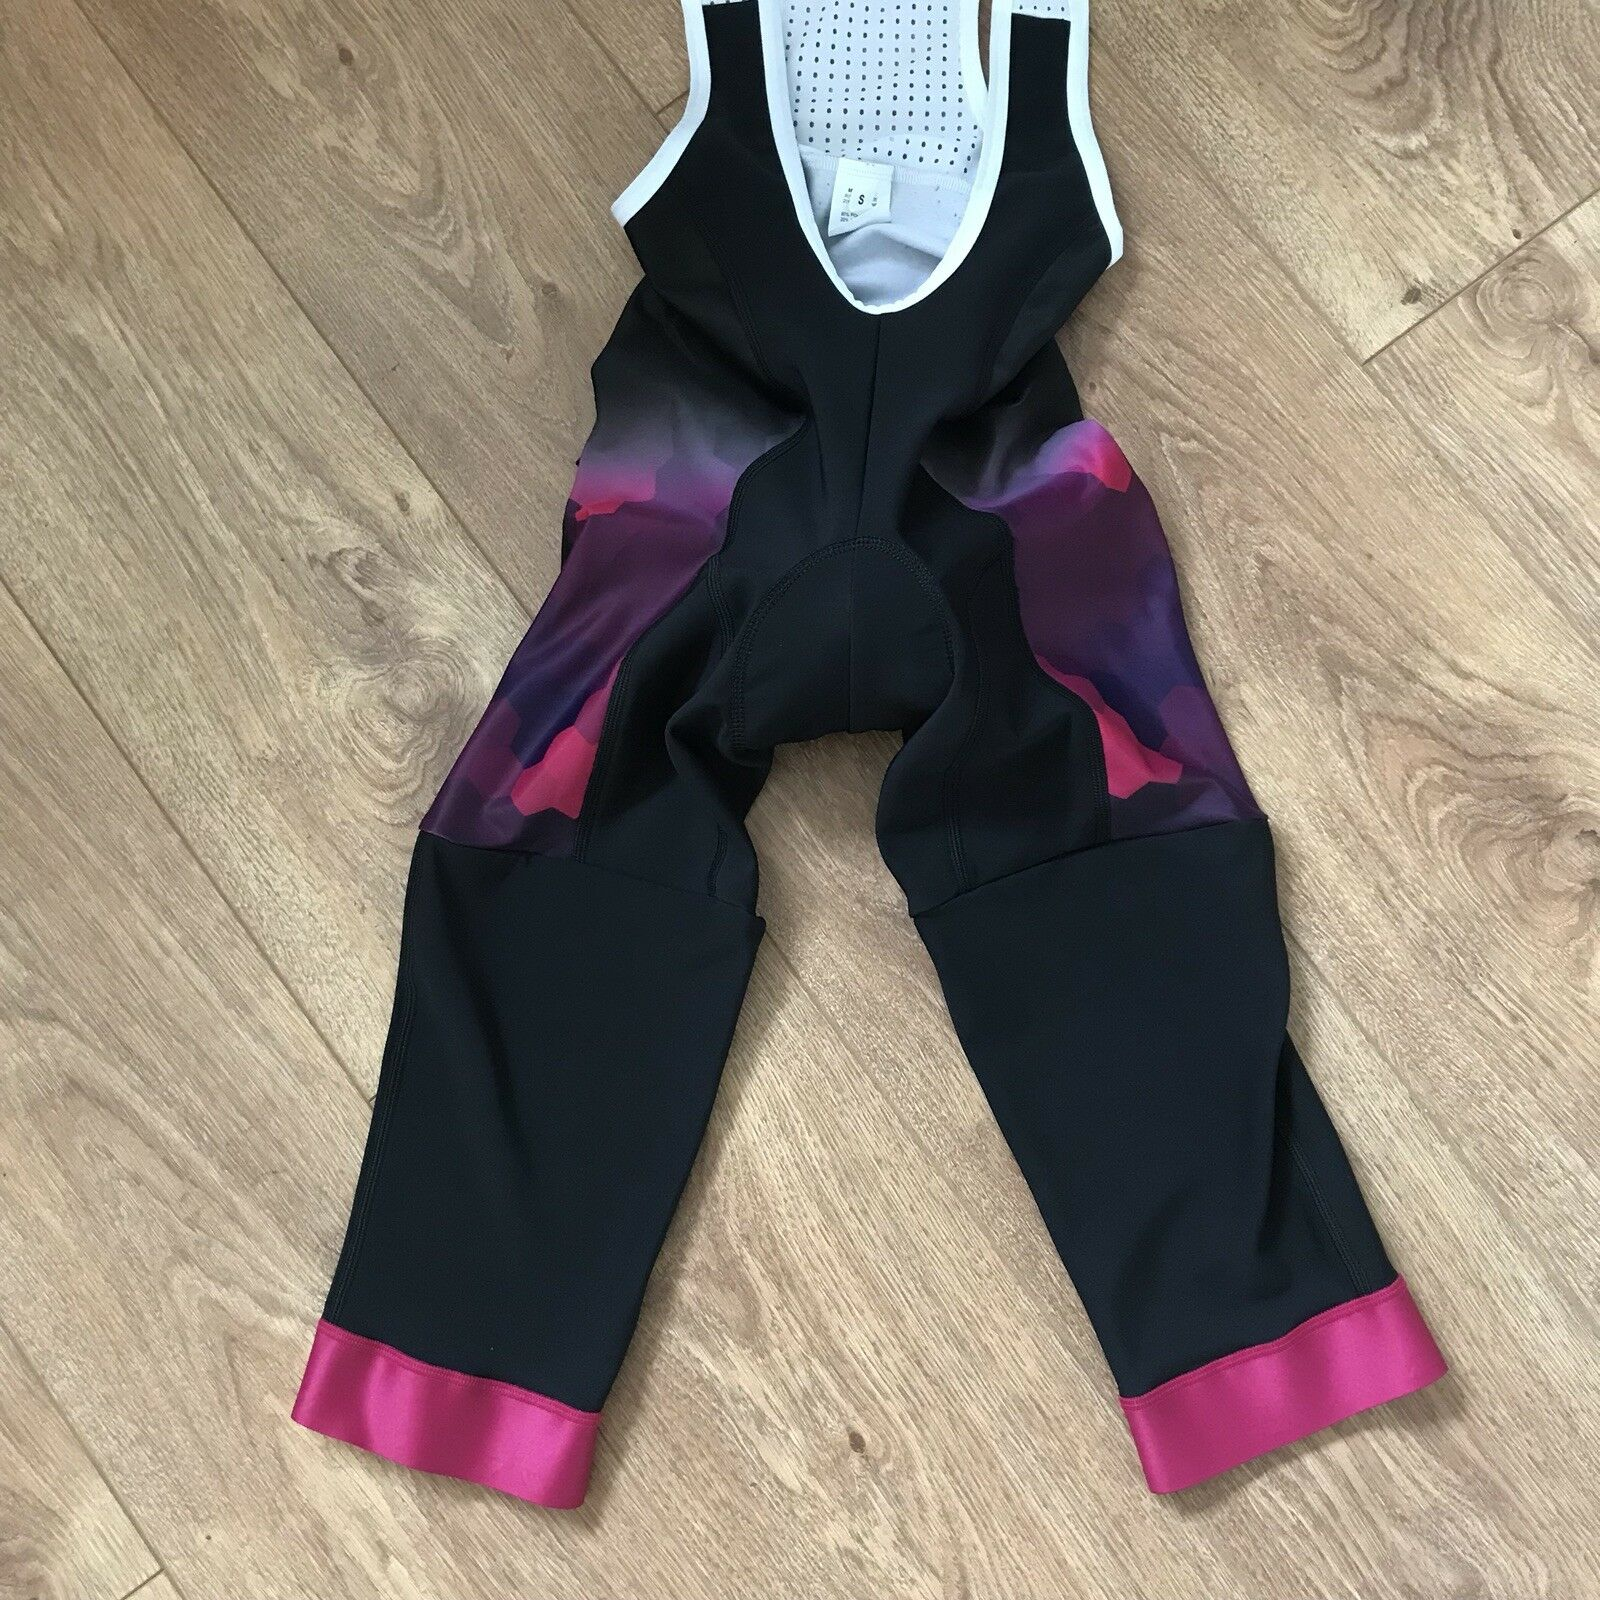 Cadenza Velo Ladies  3 4 Bib Shorts Padded Road Race XC Cycle RRP  99 Sale  high-quality merchandise and convenient, honest service